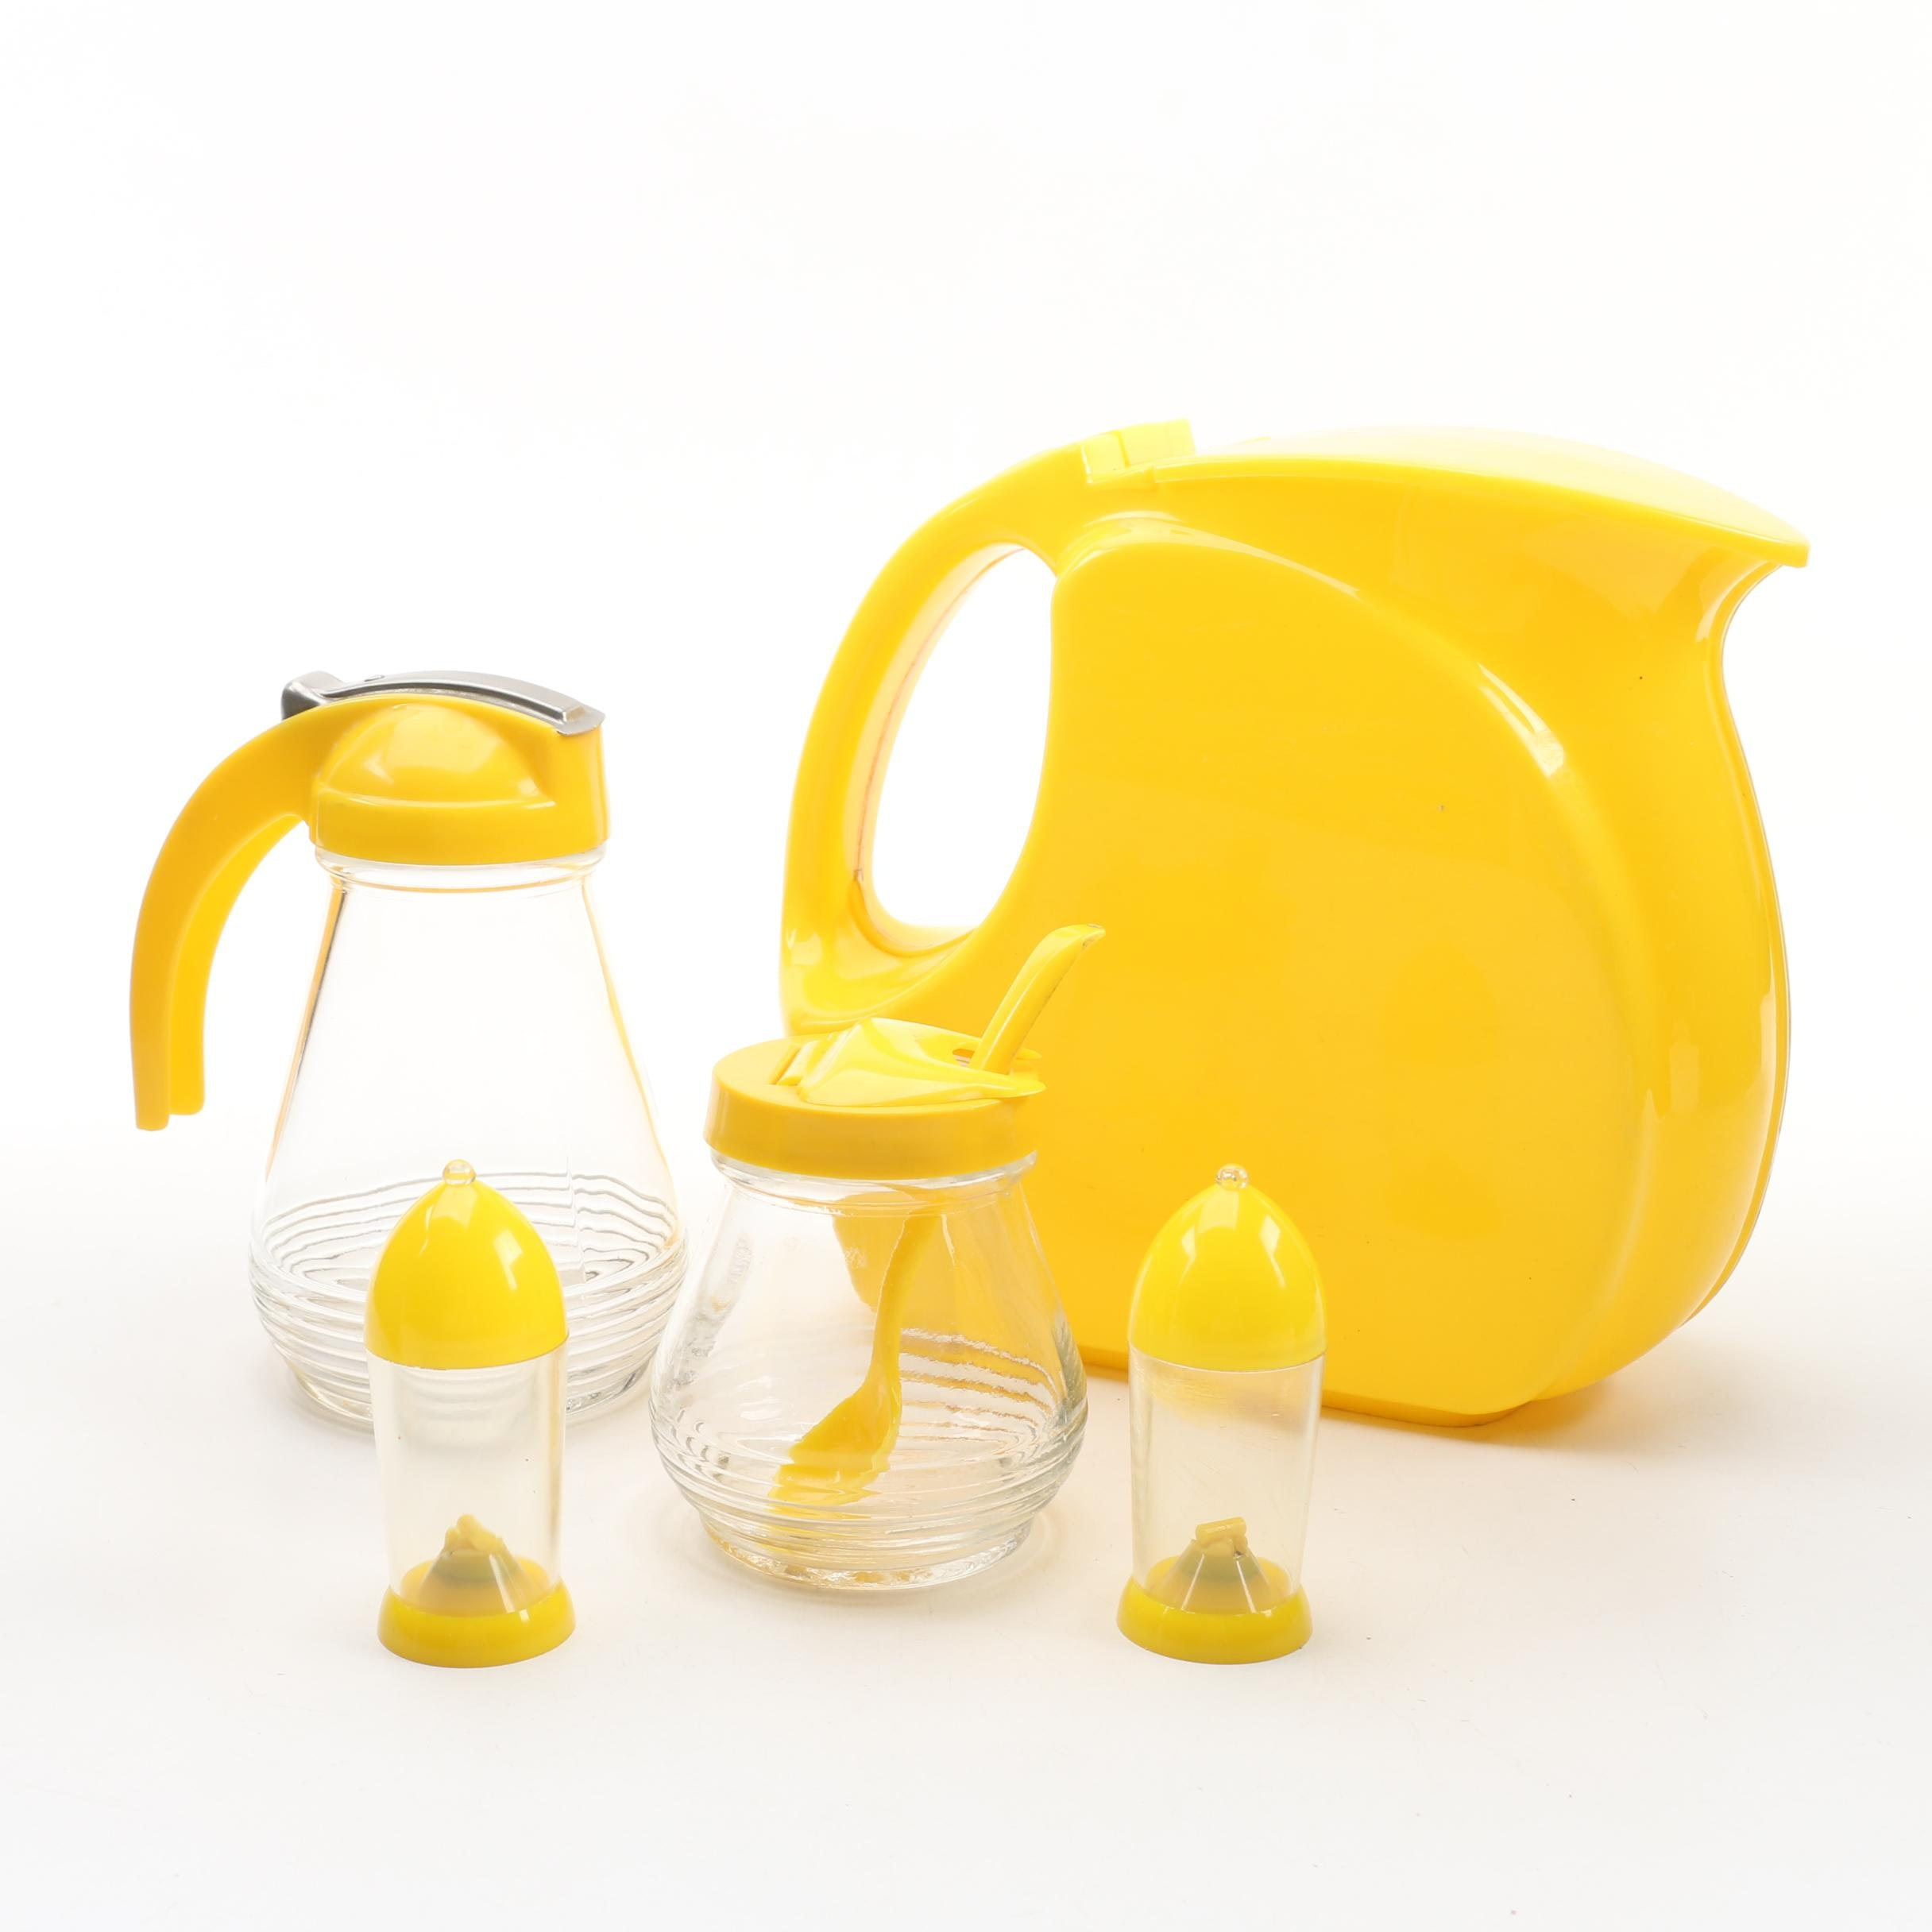 Wata-Kanta Pitcher with Marmalade Jar, Syrup Pitcher and Shakers, Mid-Century